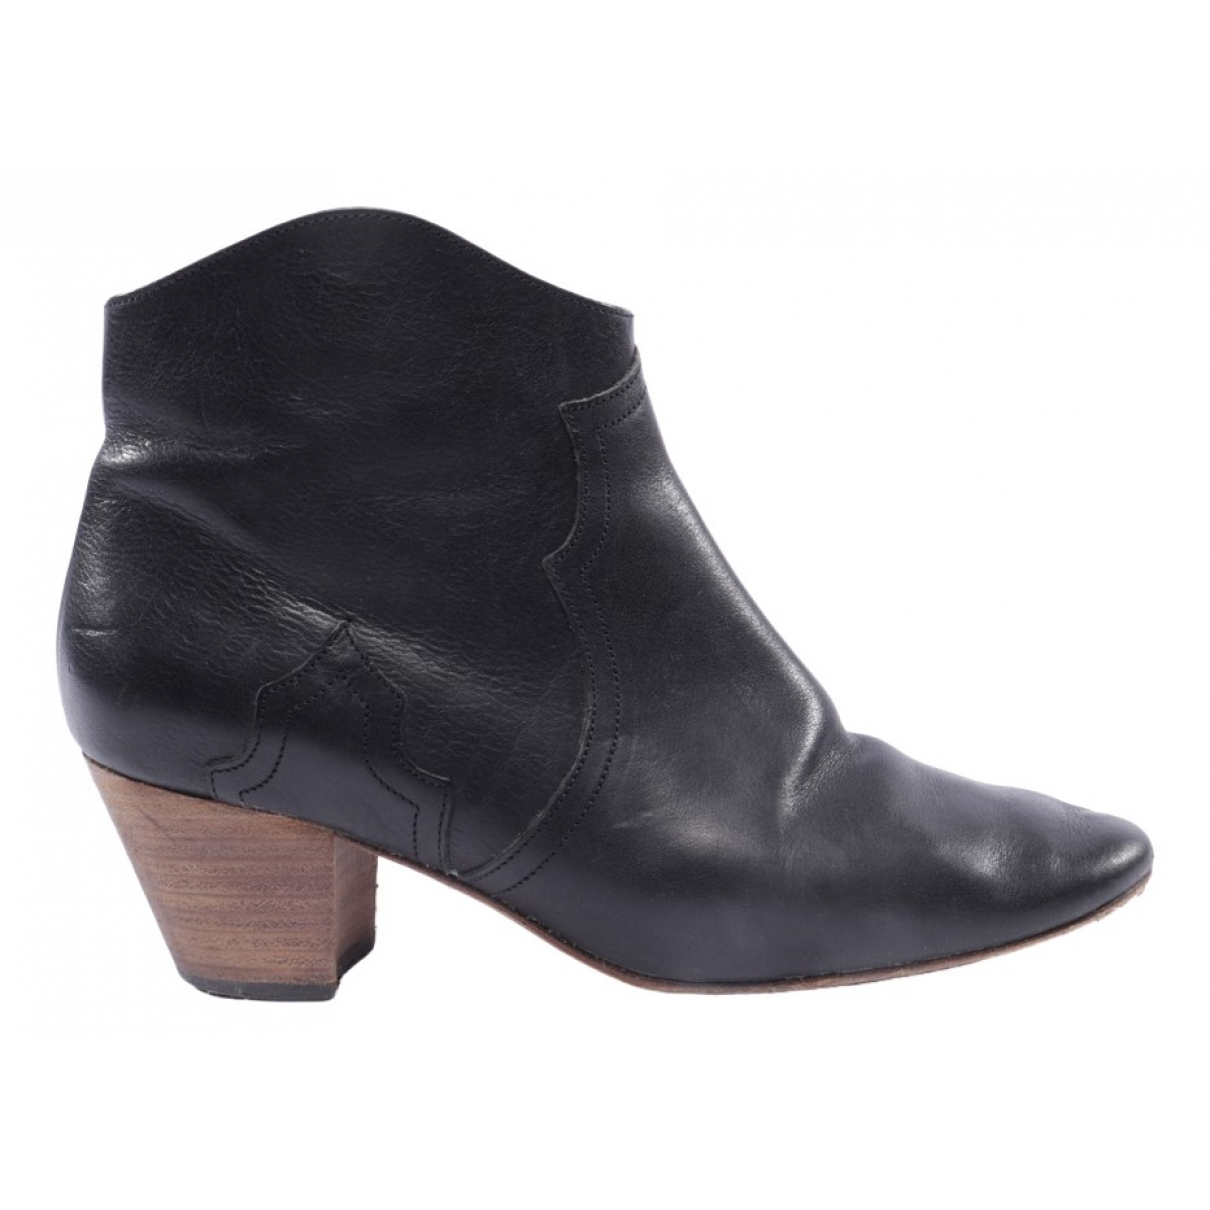 Isabel Marant Dicker Black Leather Ankle boots for Women 38 EU